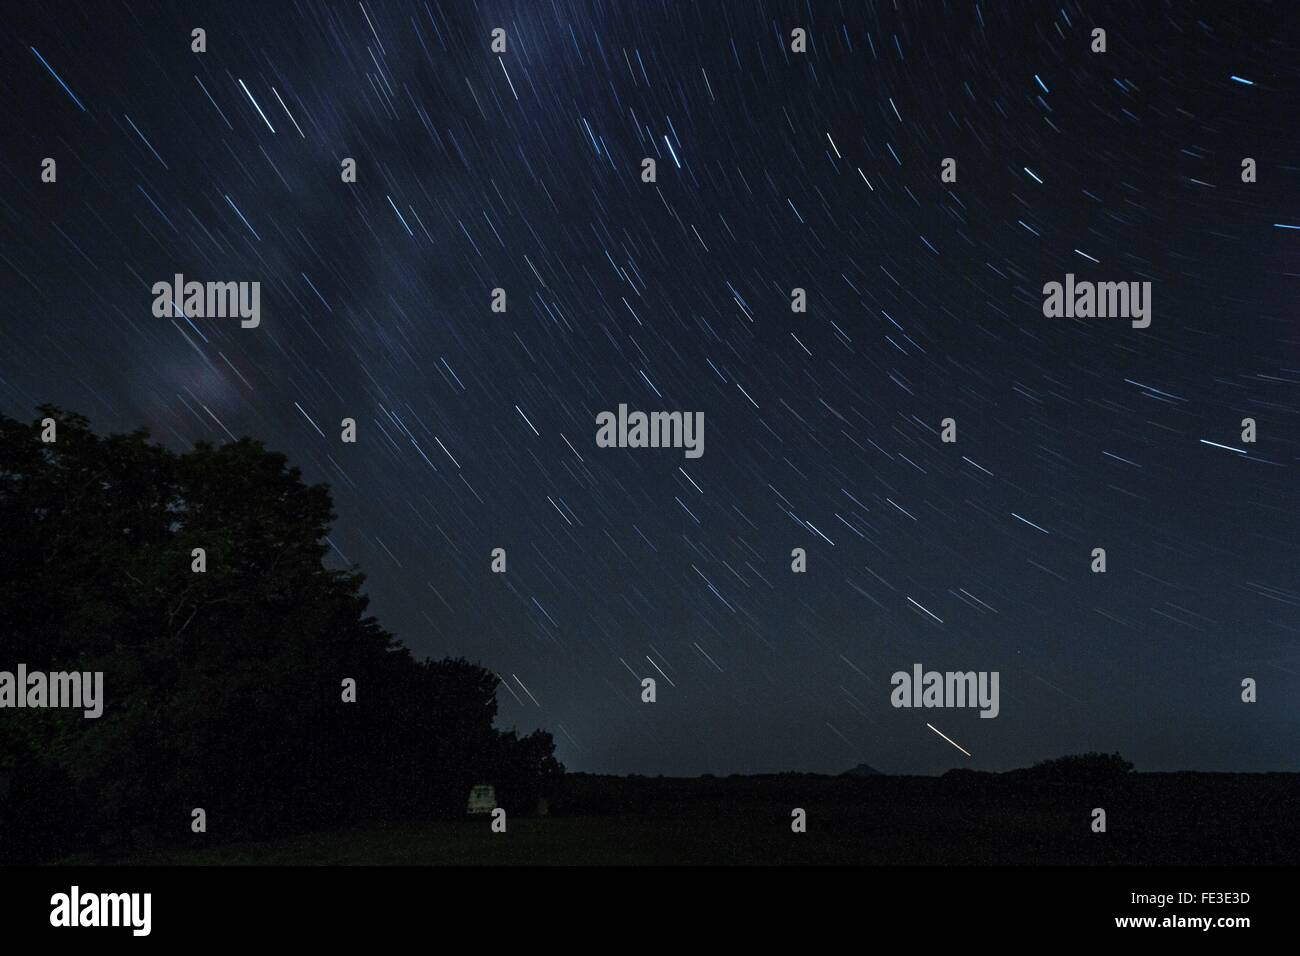 Blurred Motion Of Star Field - Stock Image